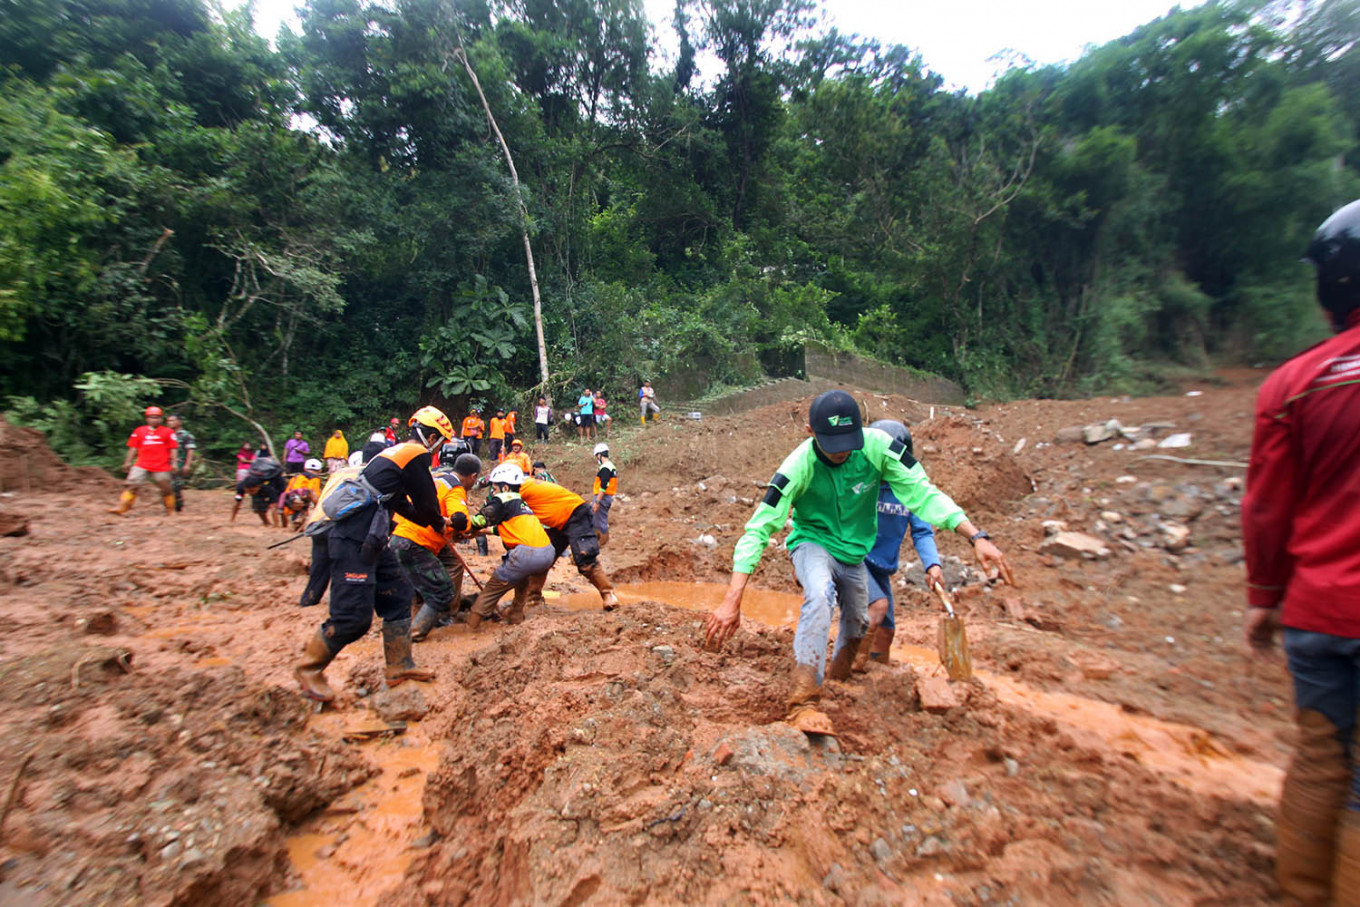 Flooding in Purworejo forces 1,500 to flee homes